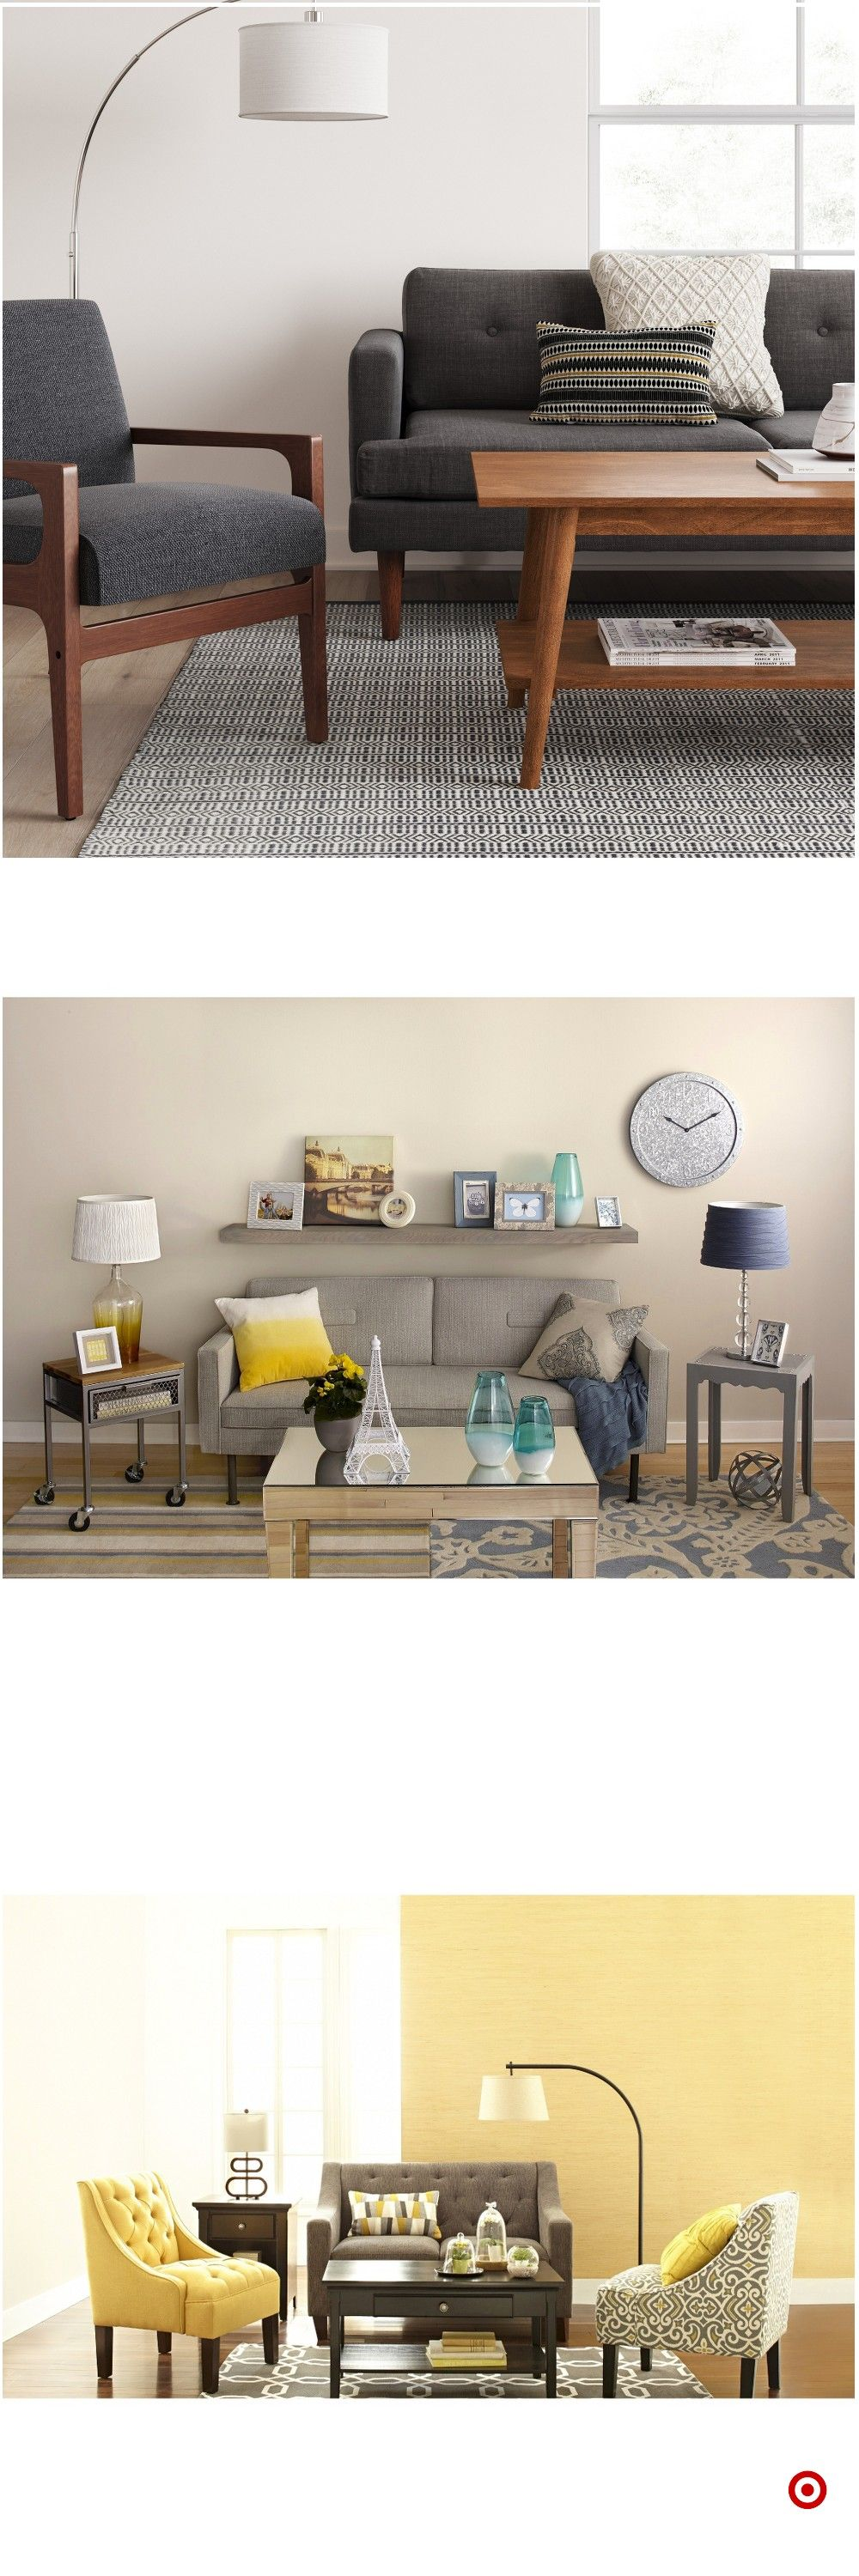 Shop Tar for coffee tables you will love at great low prices